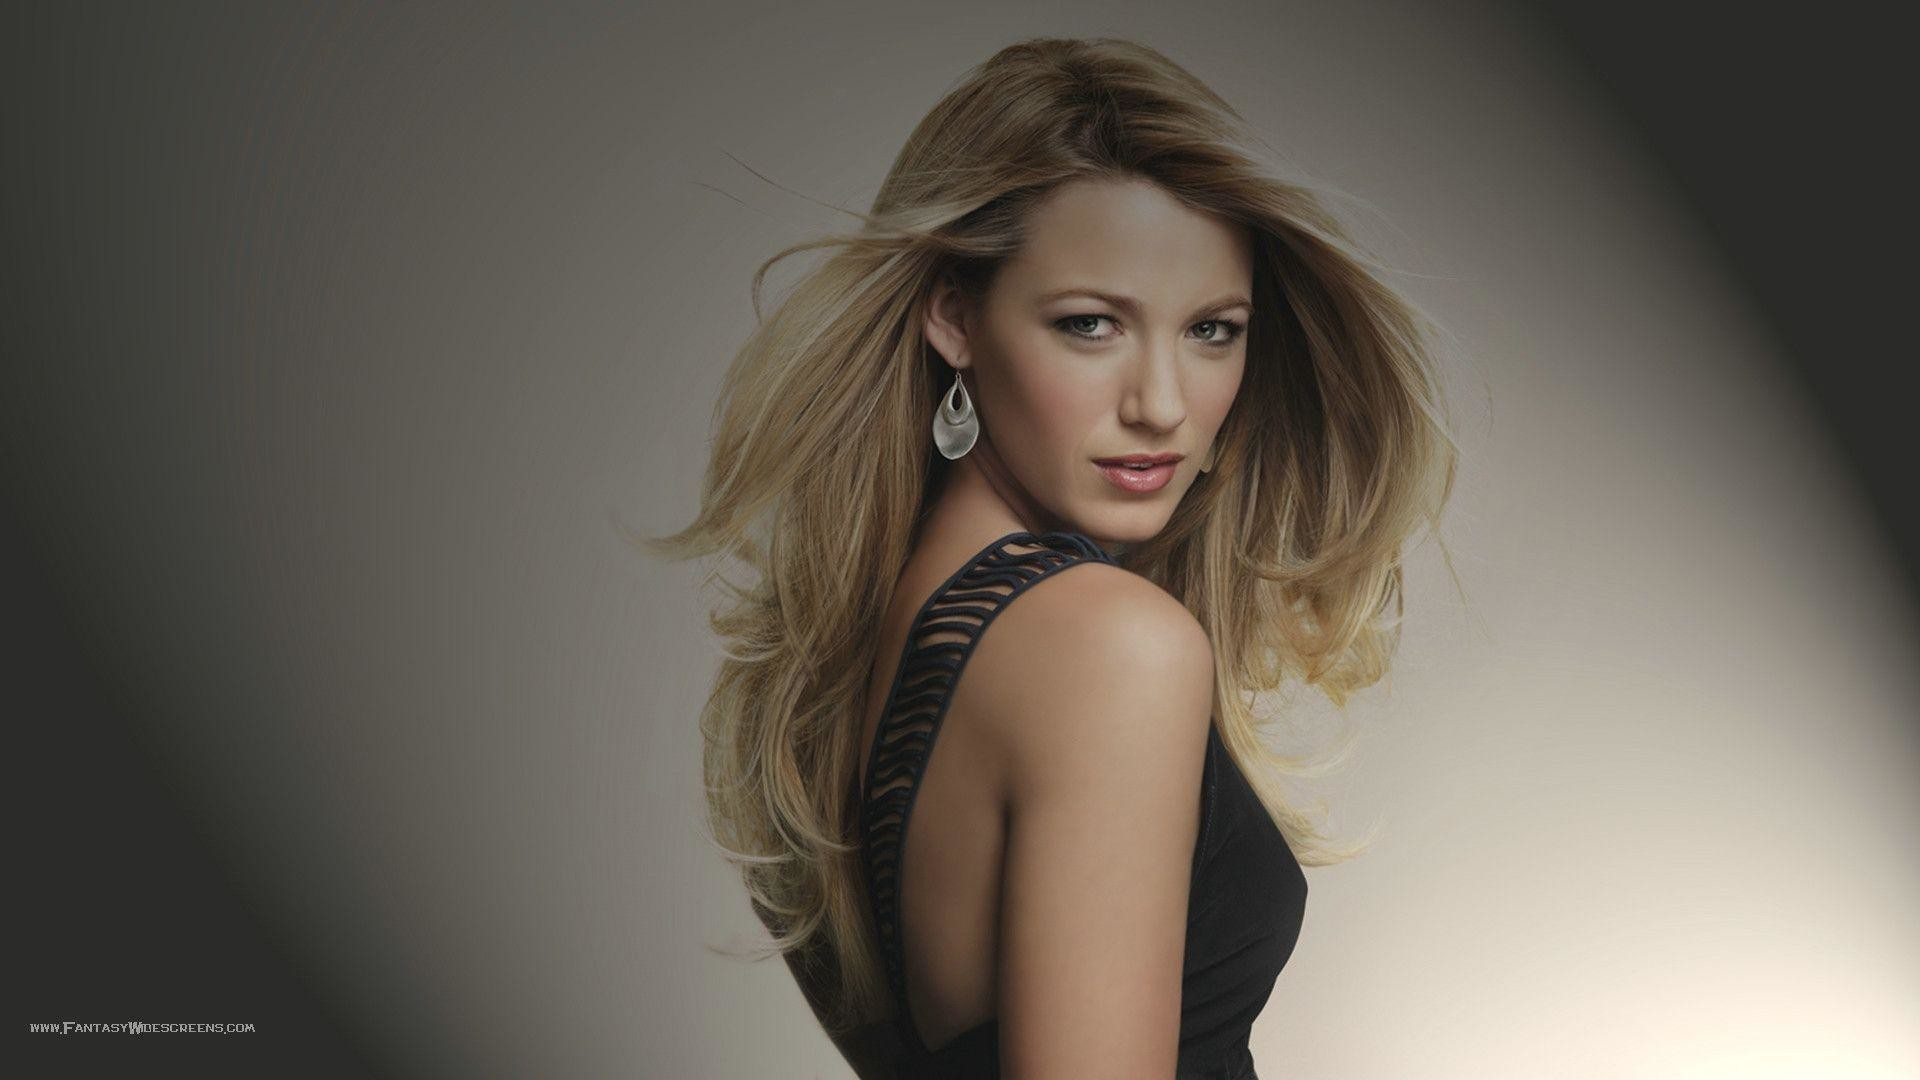 1920x1080 Cute Blake Lively Wallpaper 06 | hdwallpapers-